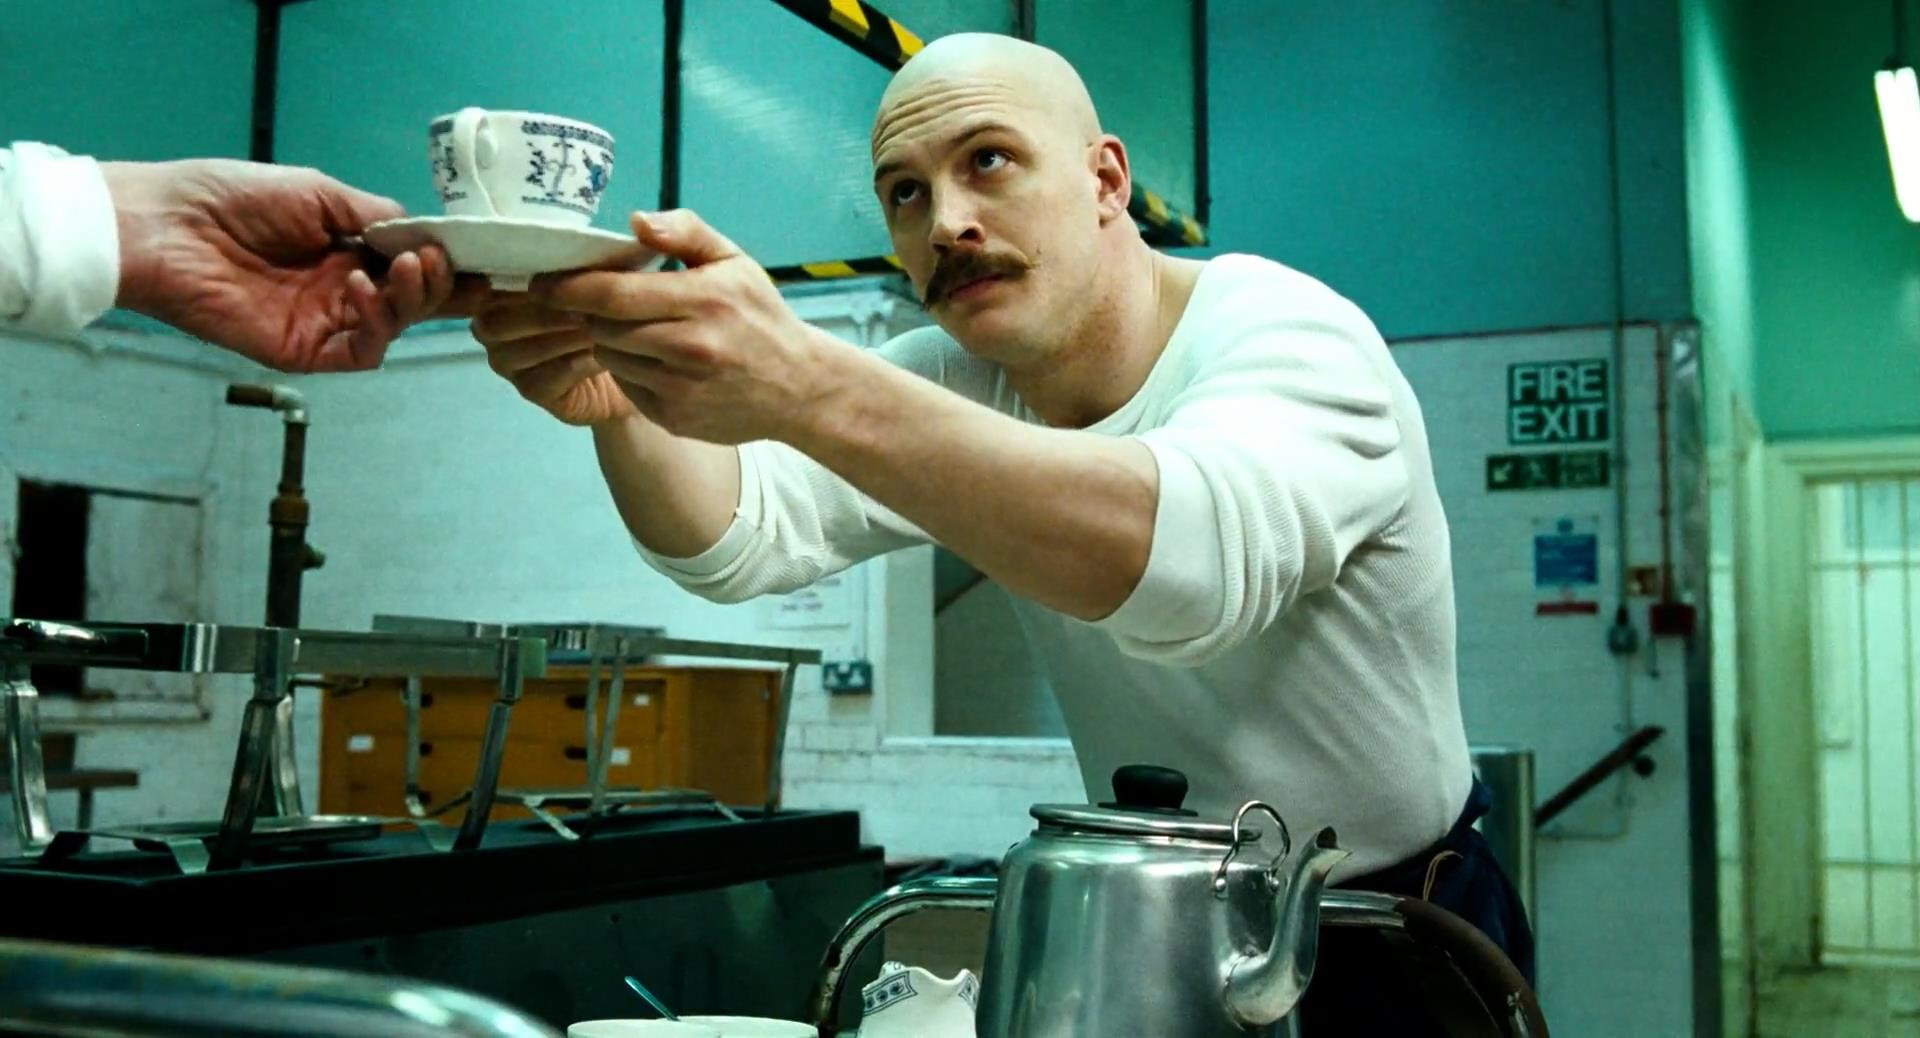 Bronson wallpapers, Movie, HQ Bronson pictures | 4K Wallpapers 2019